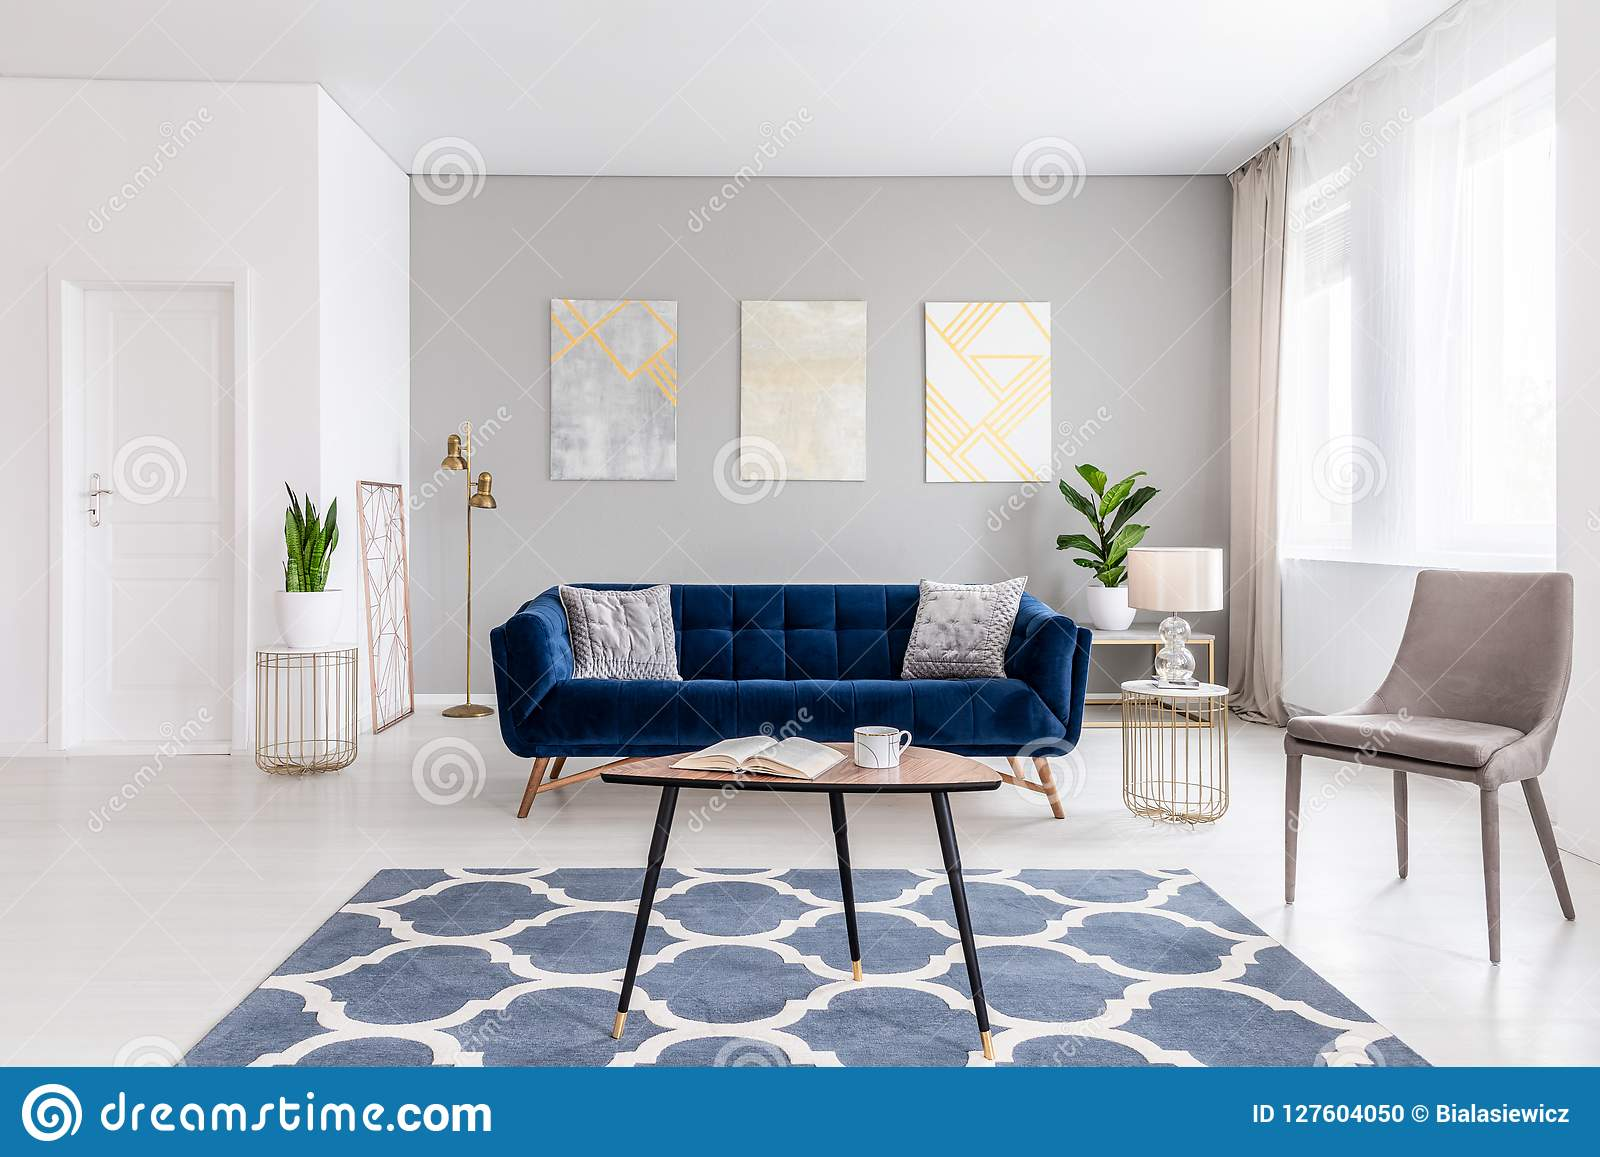 . Open Space Living Room Interior With Modern Furniture Of A Navy Blue